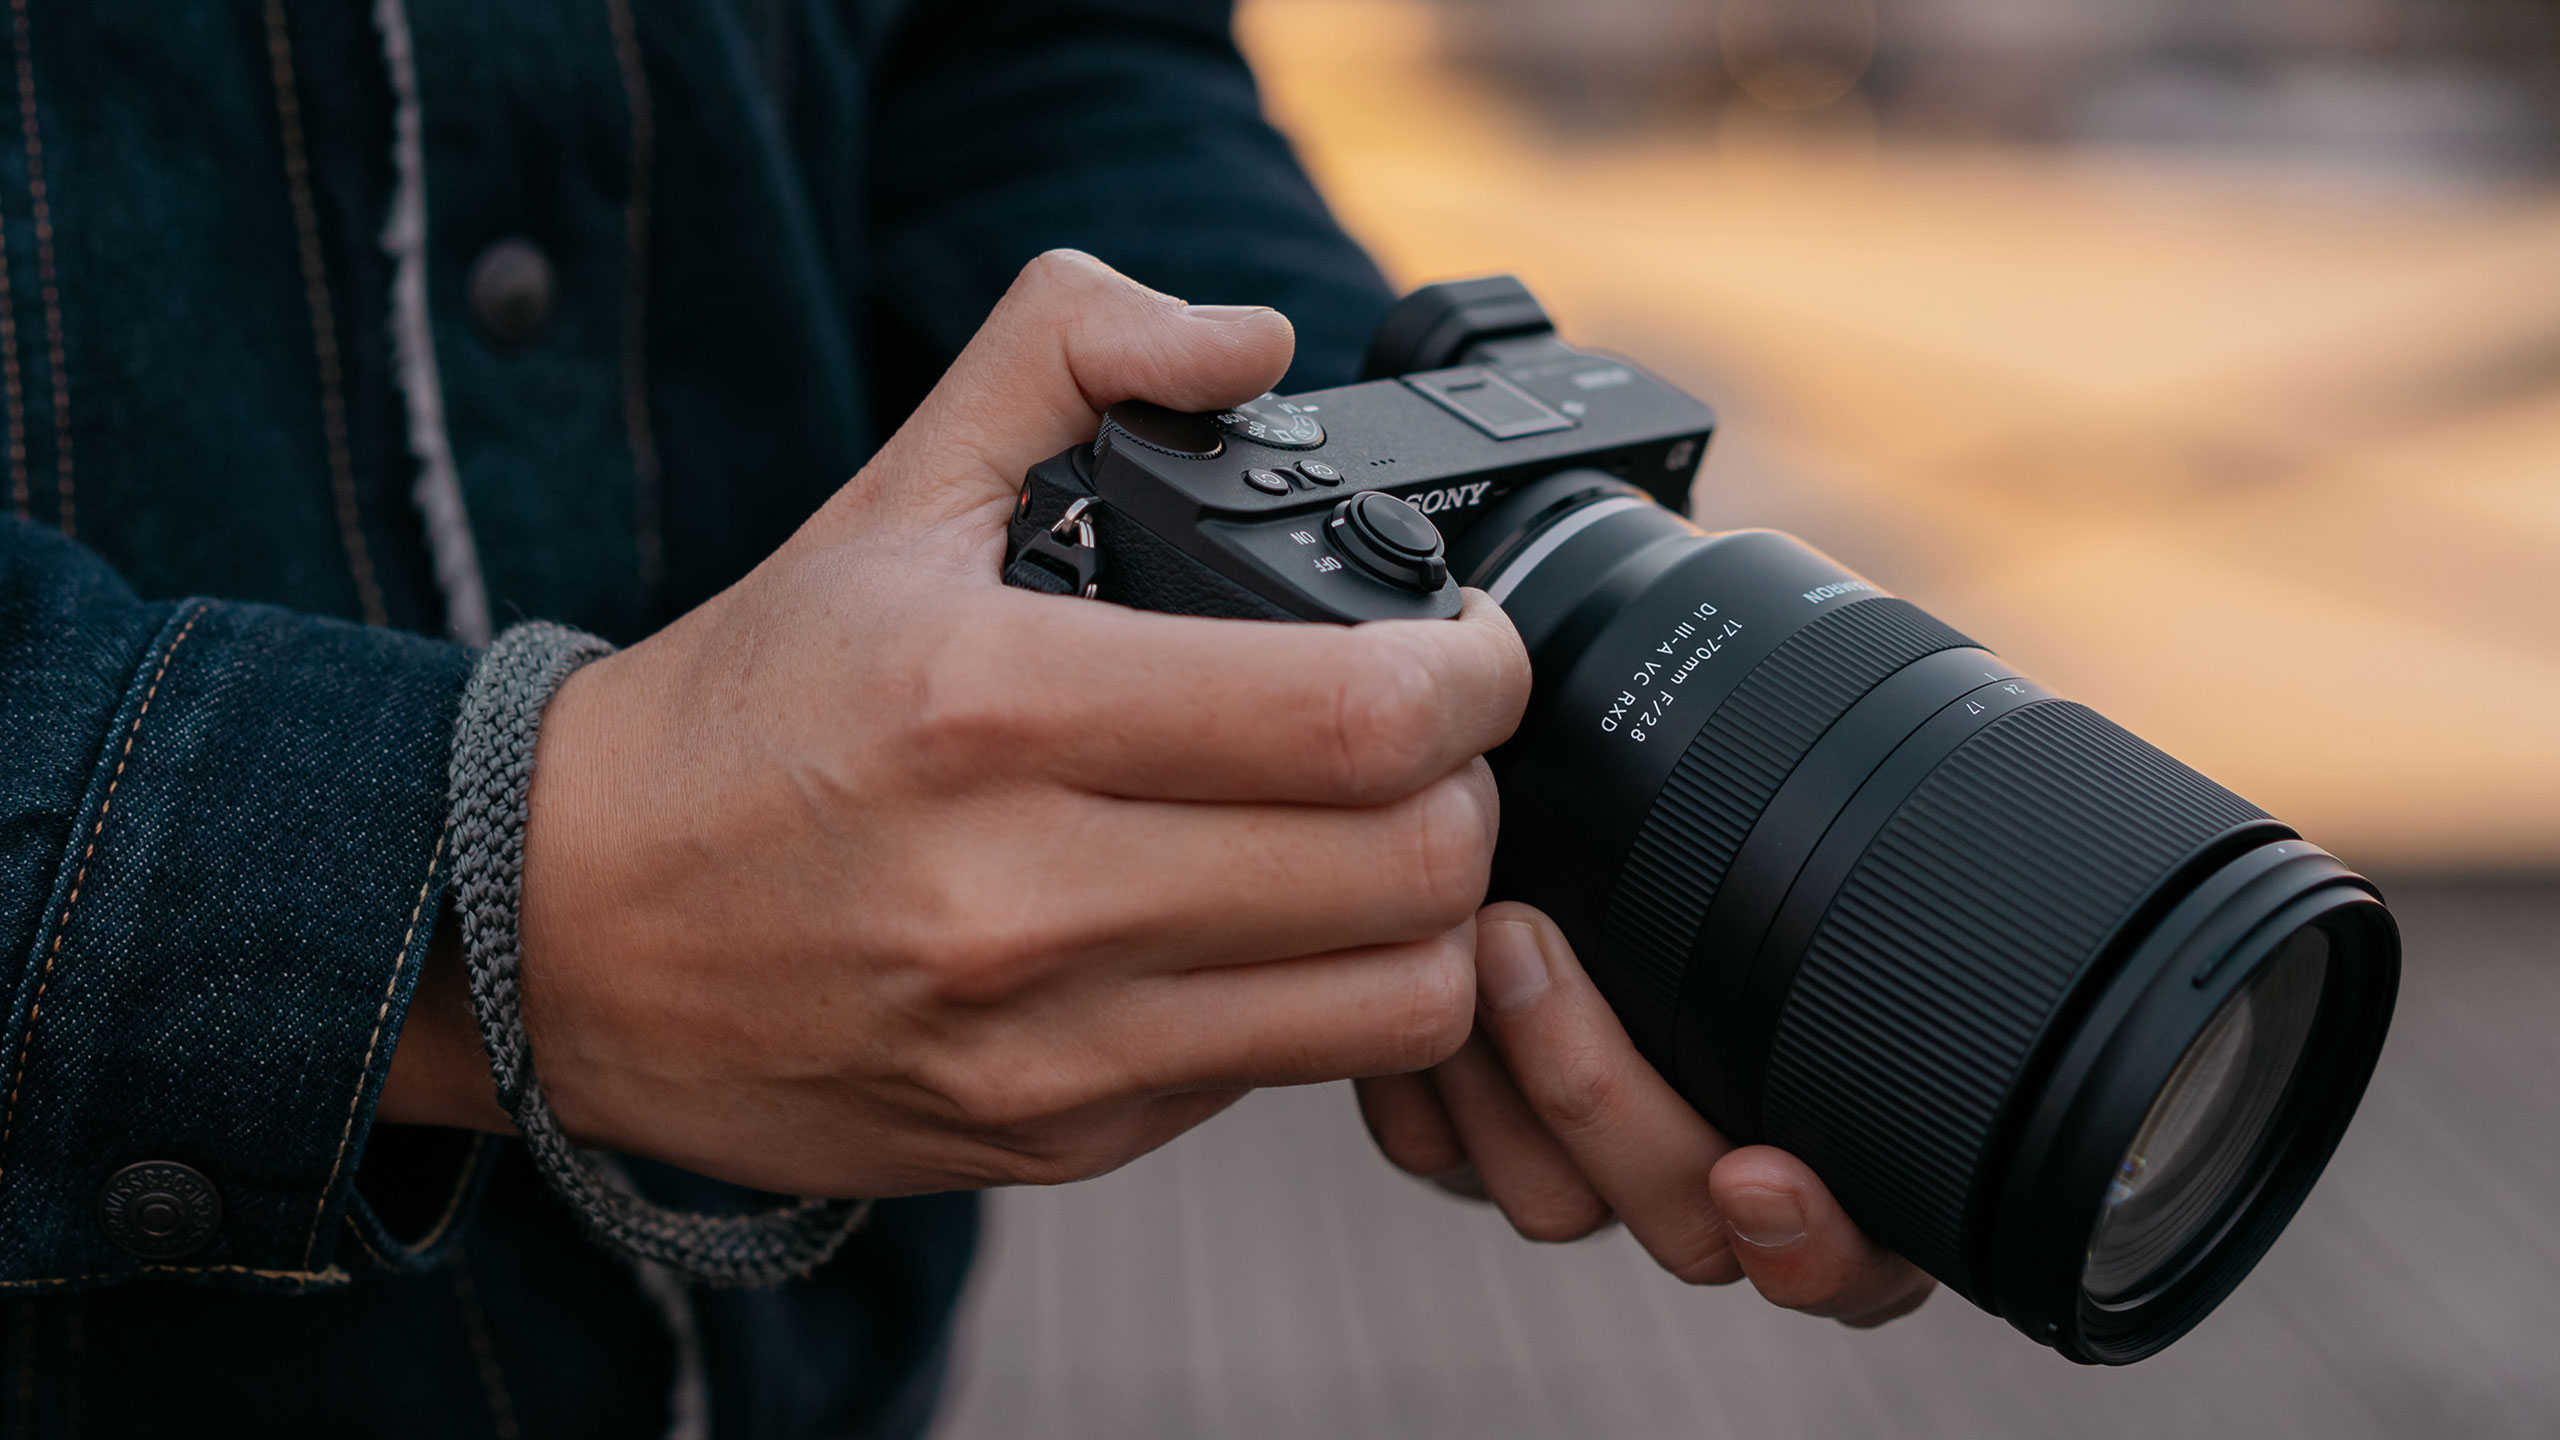 Tamron brings 17-70mm f/2.8 to Sony APS-C cameras | Photofocus